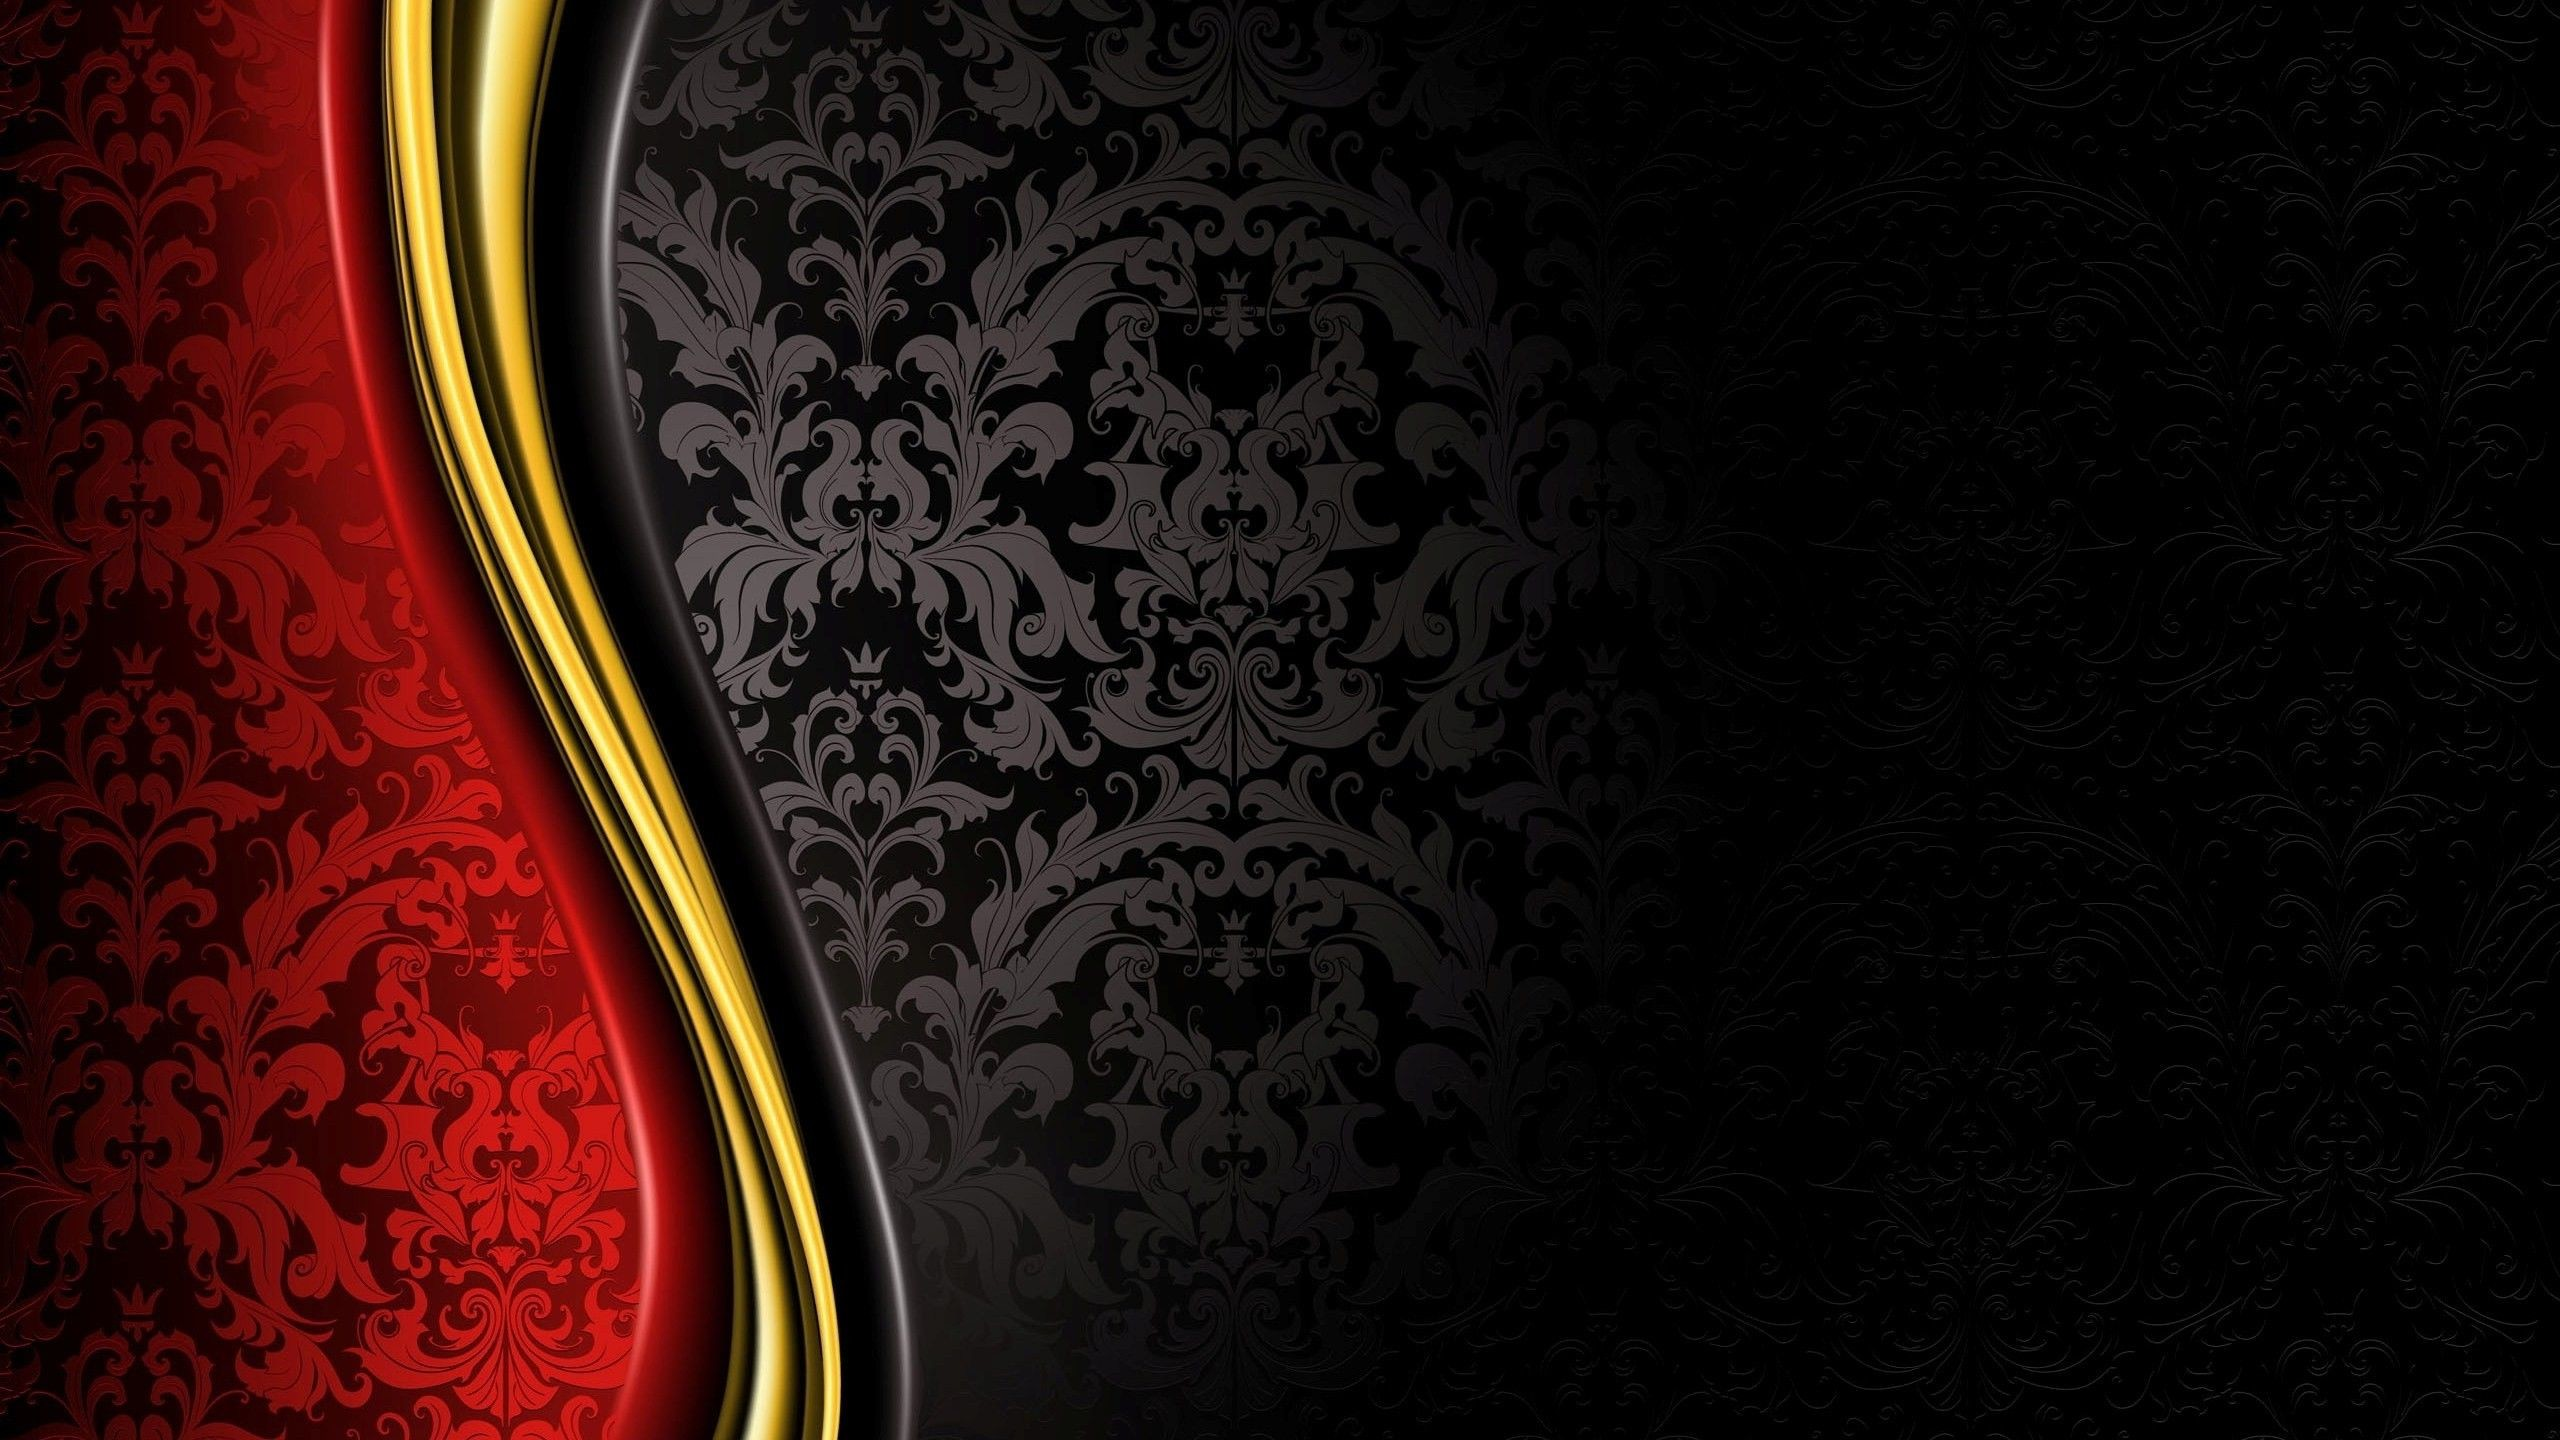 luxury, Royal, Grand, Black, Gold, Red, Abstract Wallpapers HD